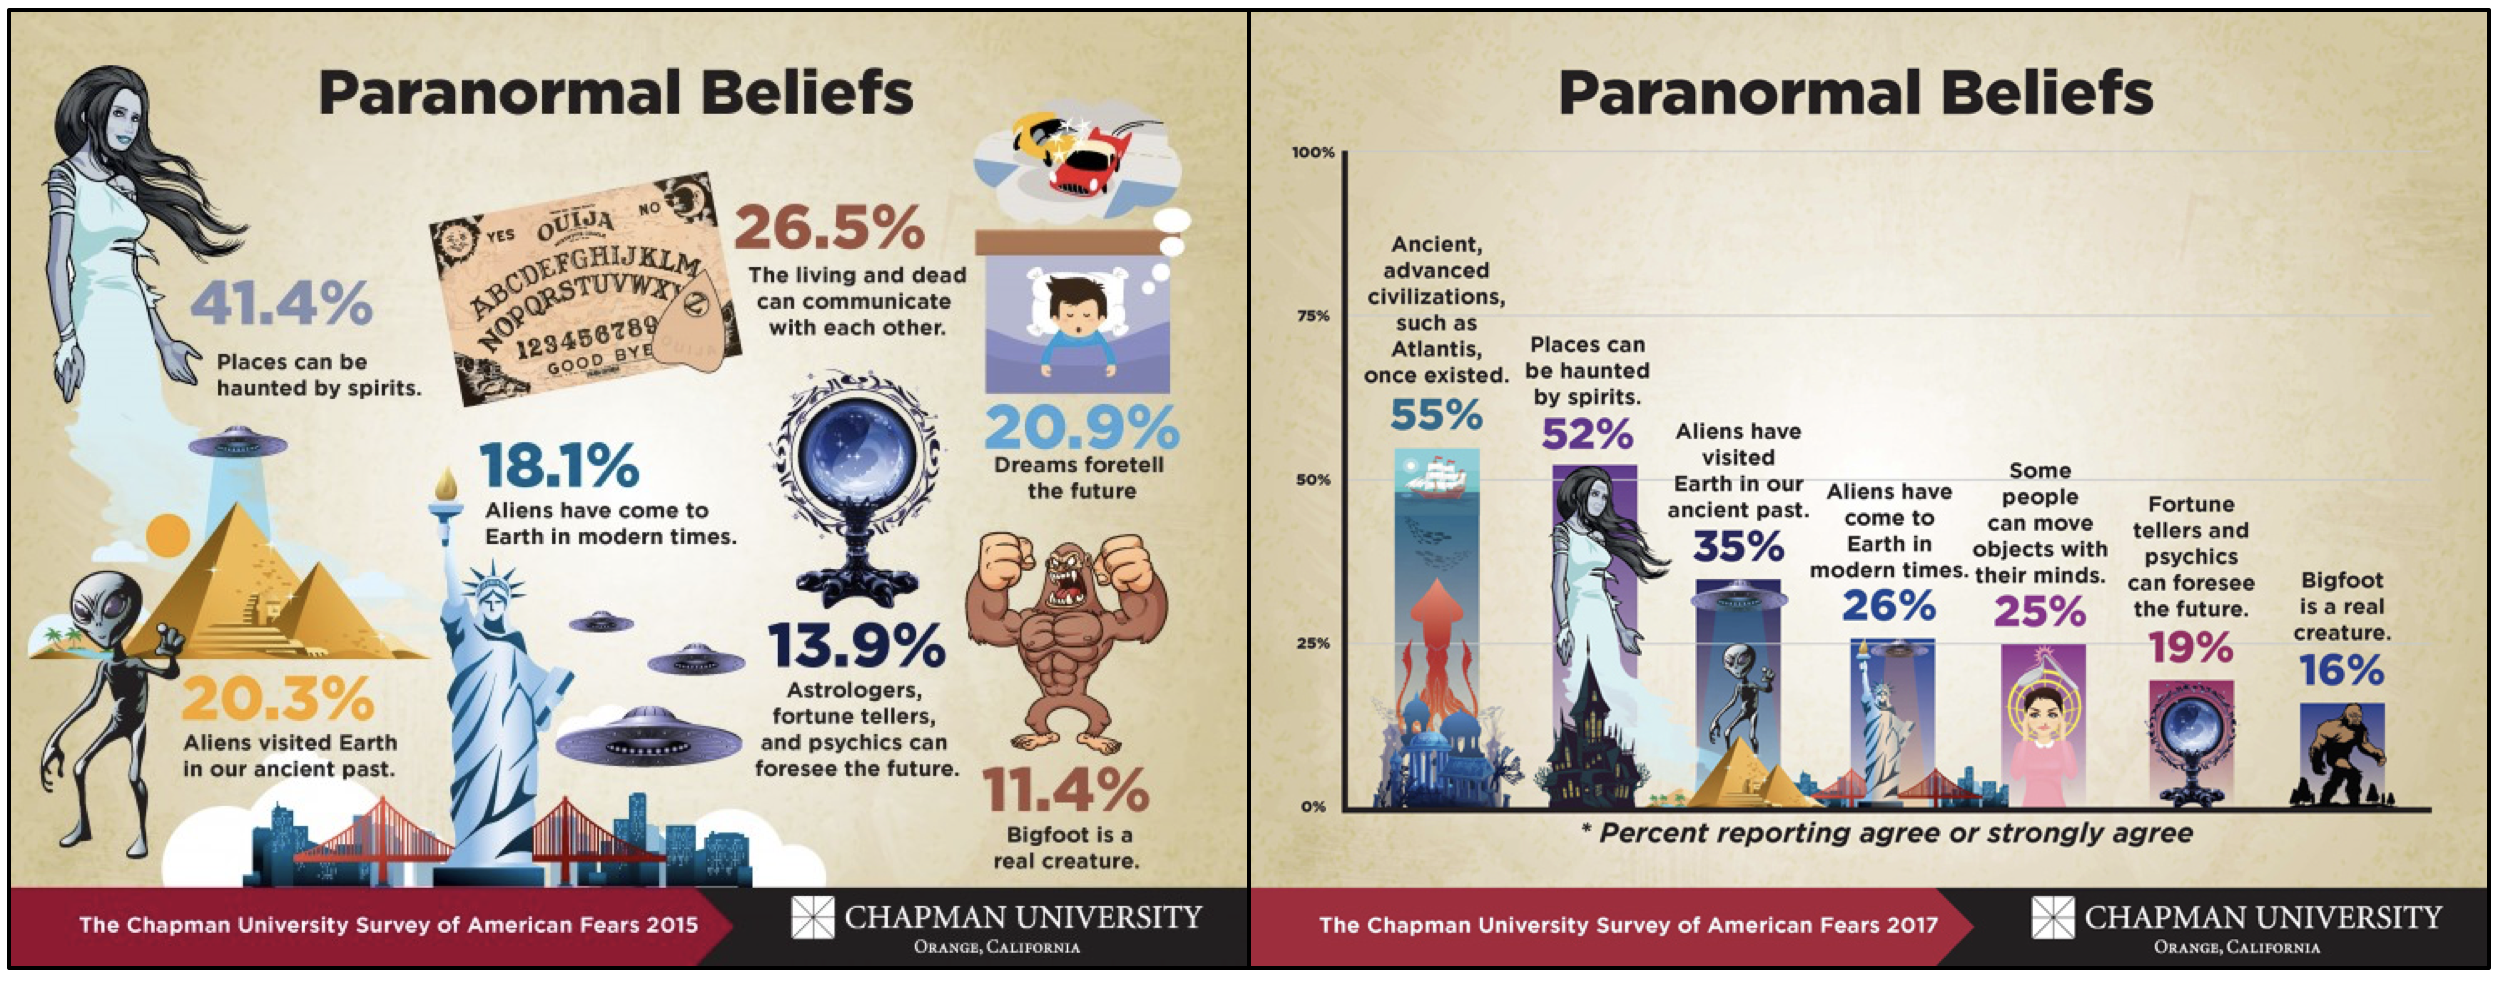 Ancient Aliens, Superheroes, and the Decline in Religious Belief